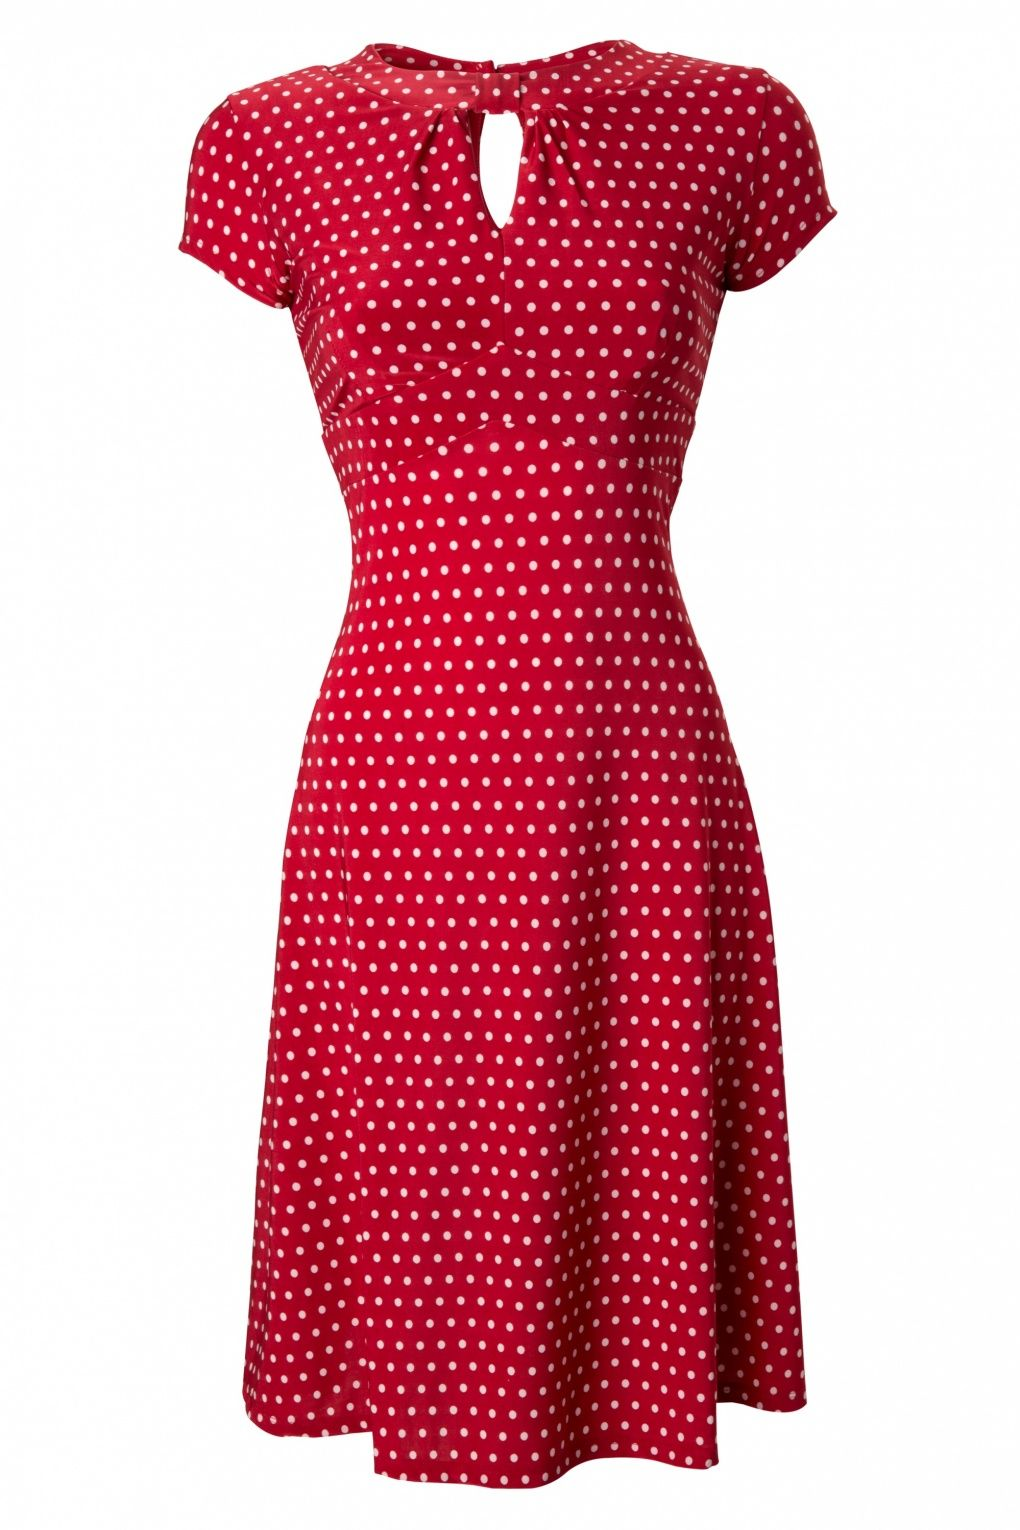 51dd3112c084fa  need ❤ Lindy Bop - 40s Juliet Classy Red Polka Dot Vintage Flared Tea dress